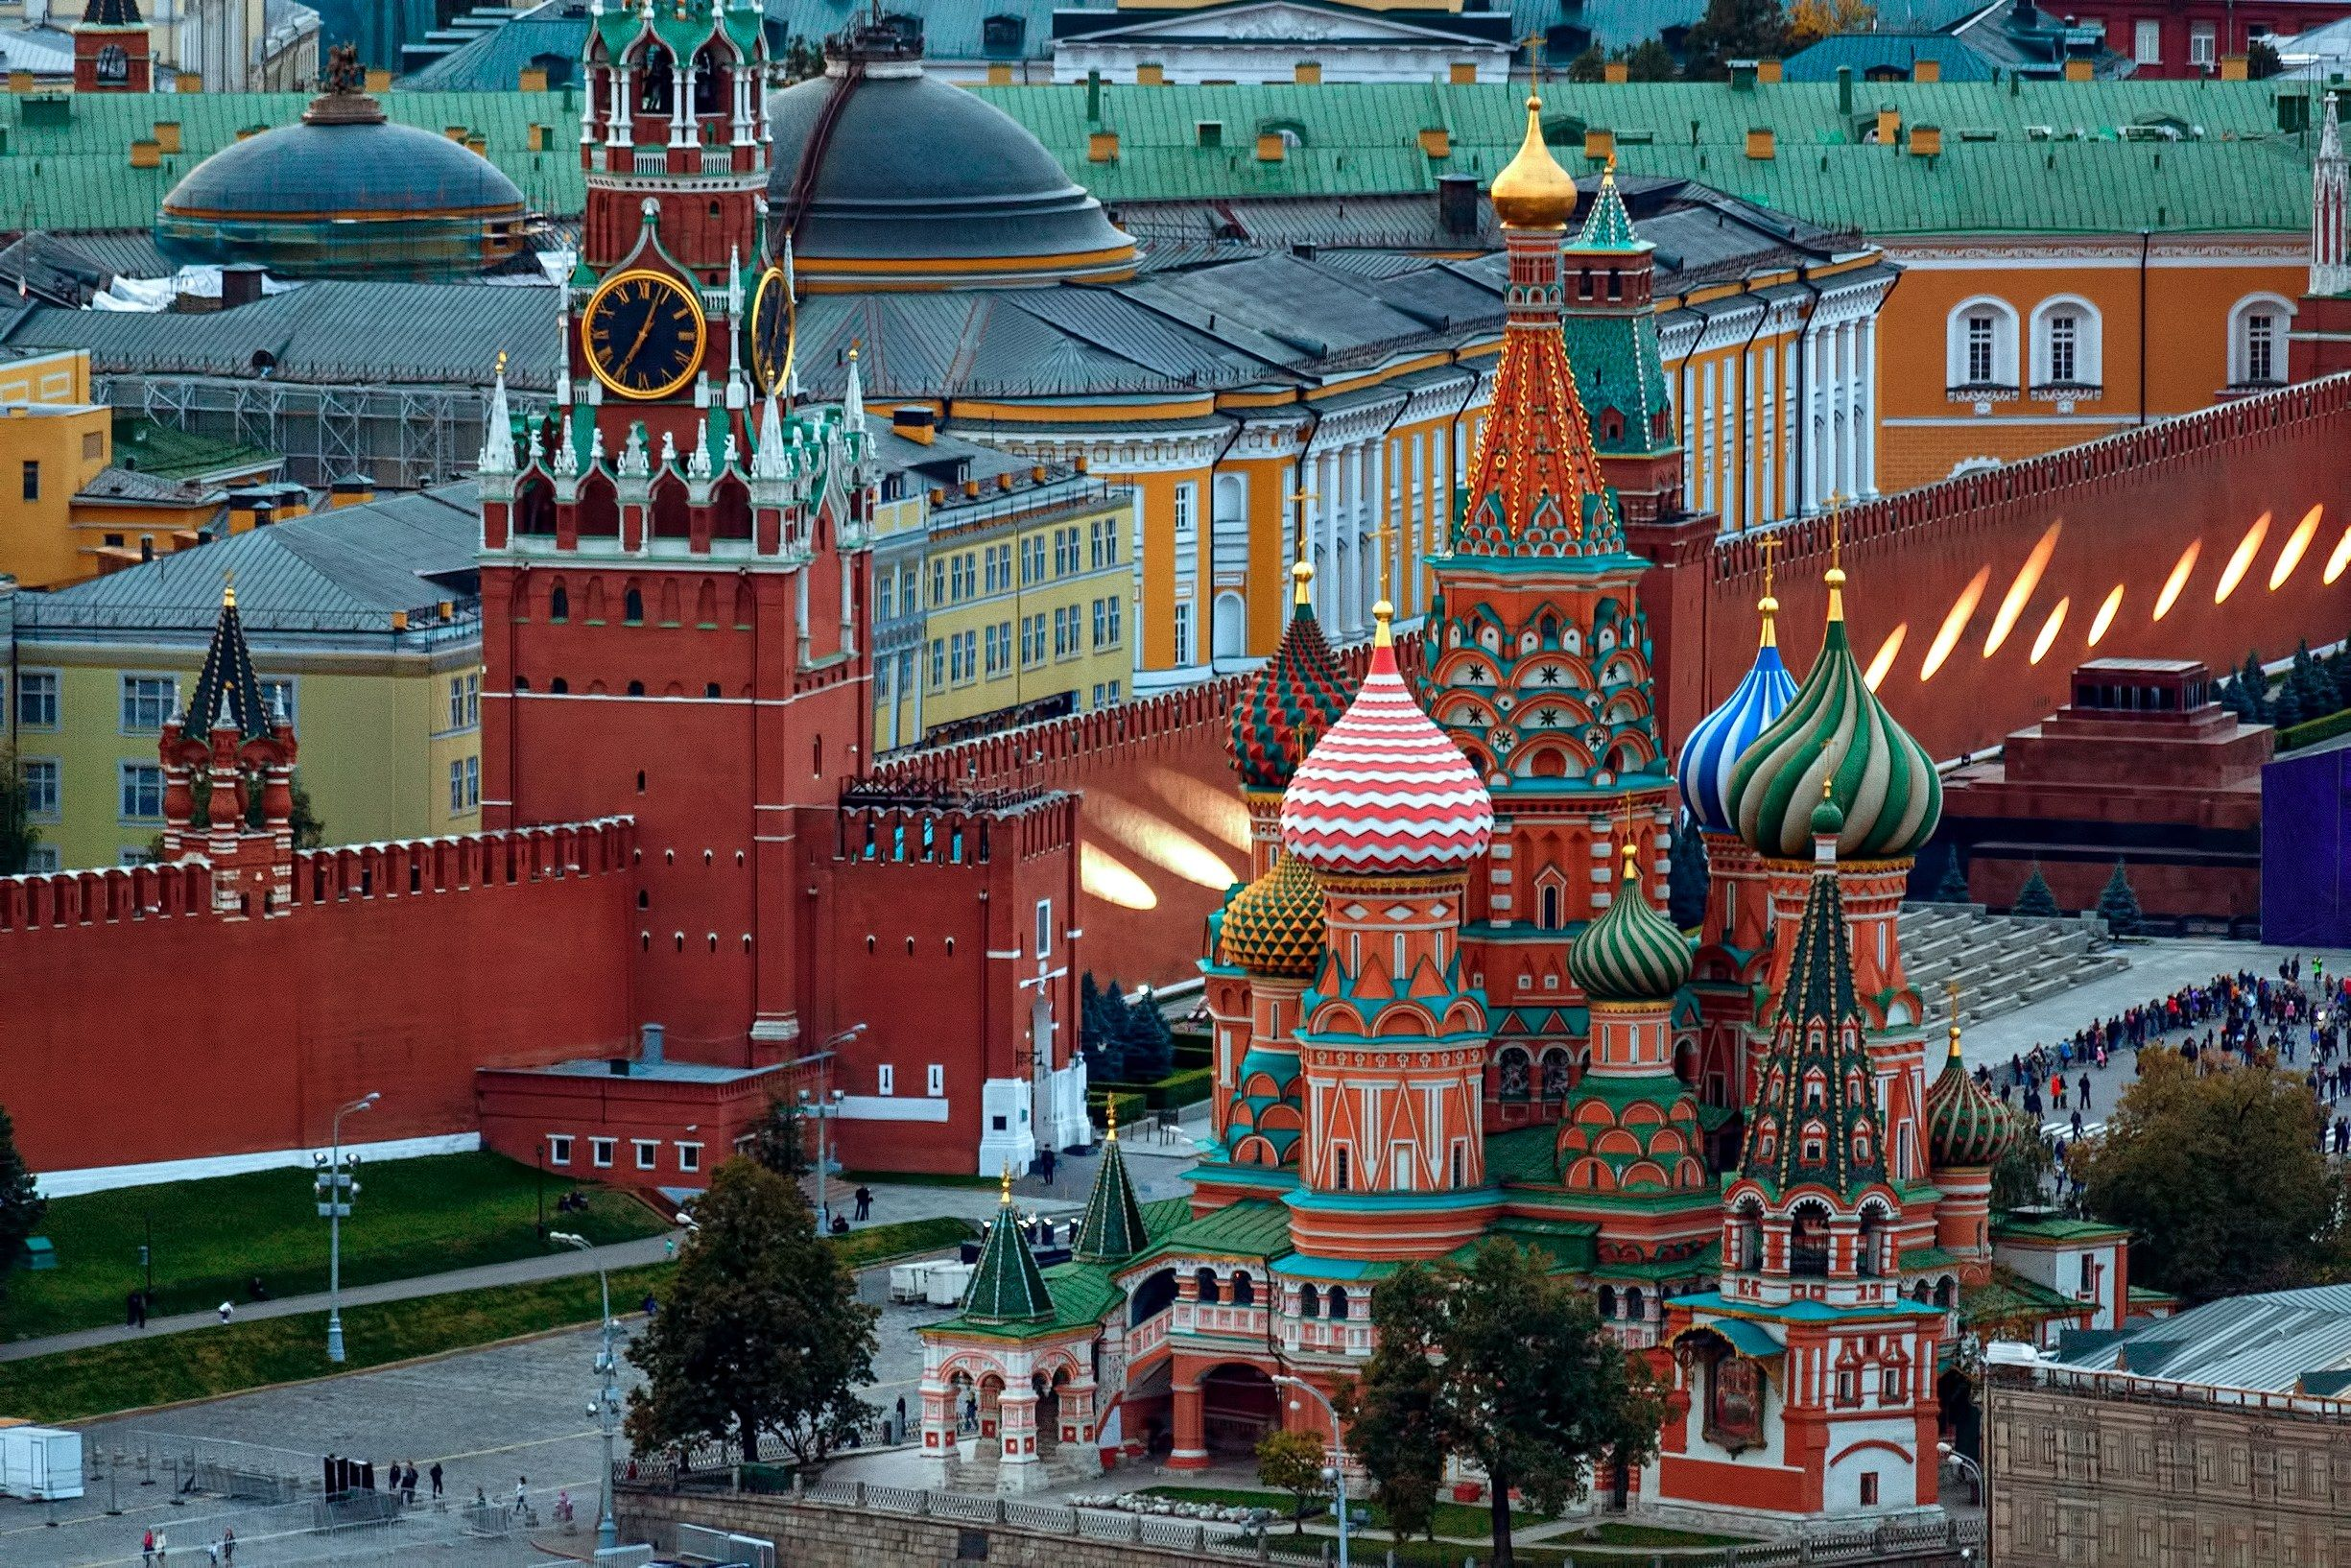 Media: Russia's reaction to US sanctions will be tough